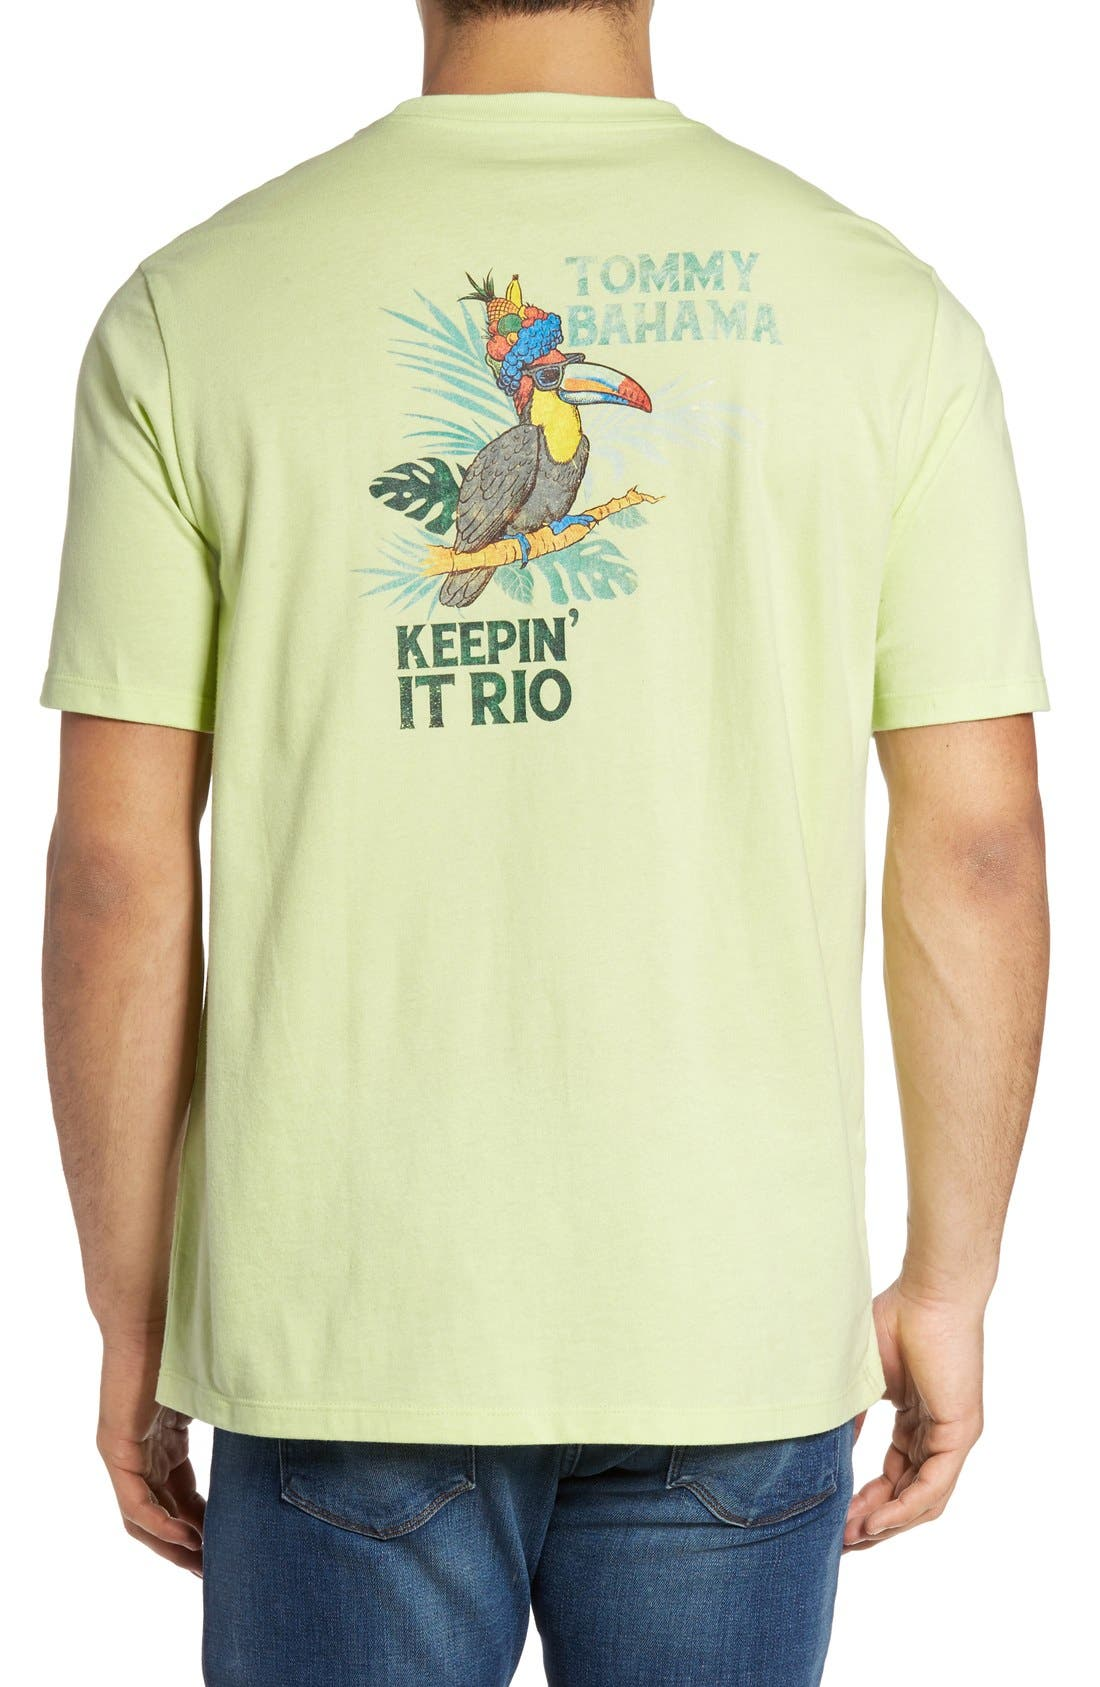 Main Image - Tommy Bahama Keeping It Rio Graphic T-Shirt (Big & Tall)